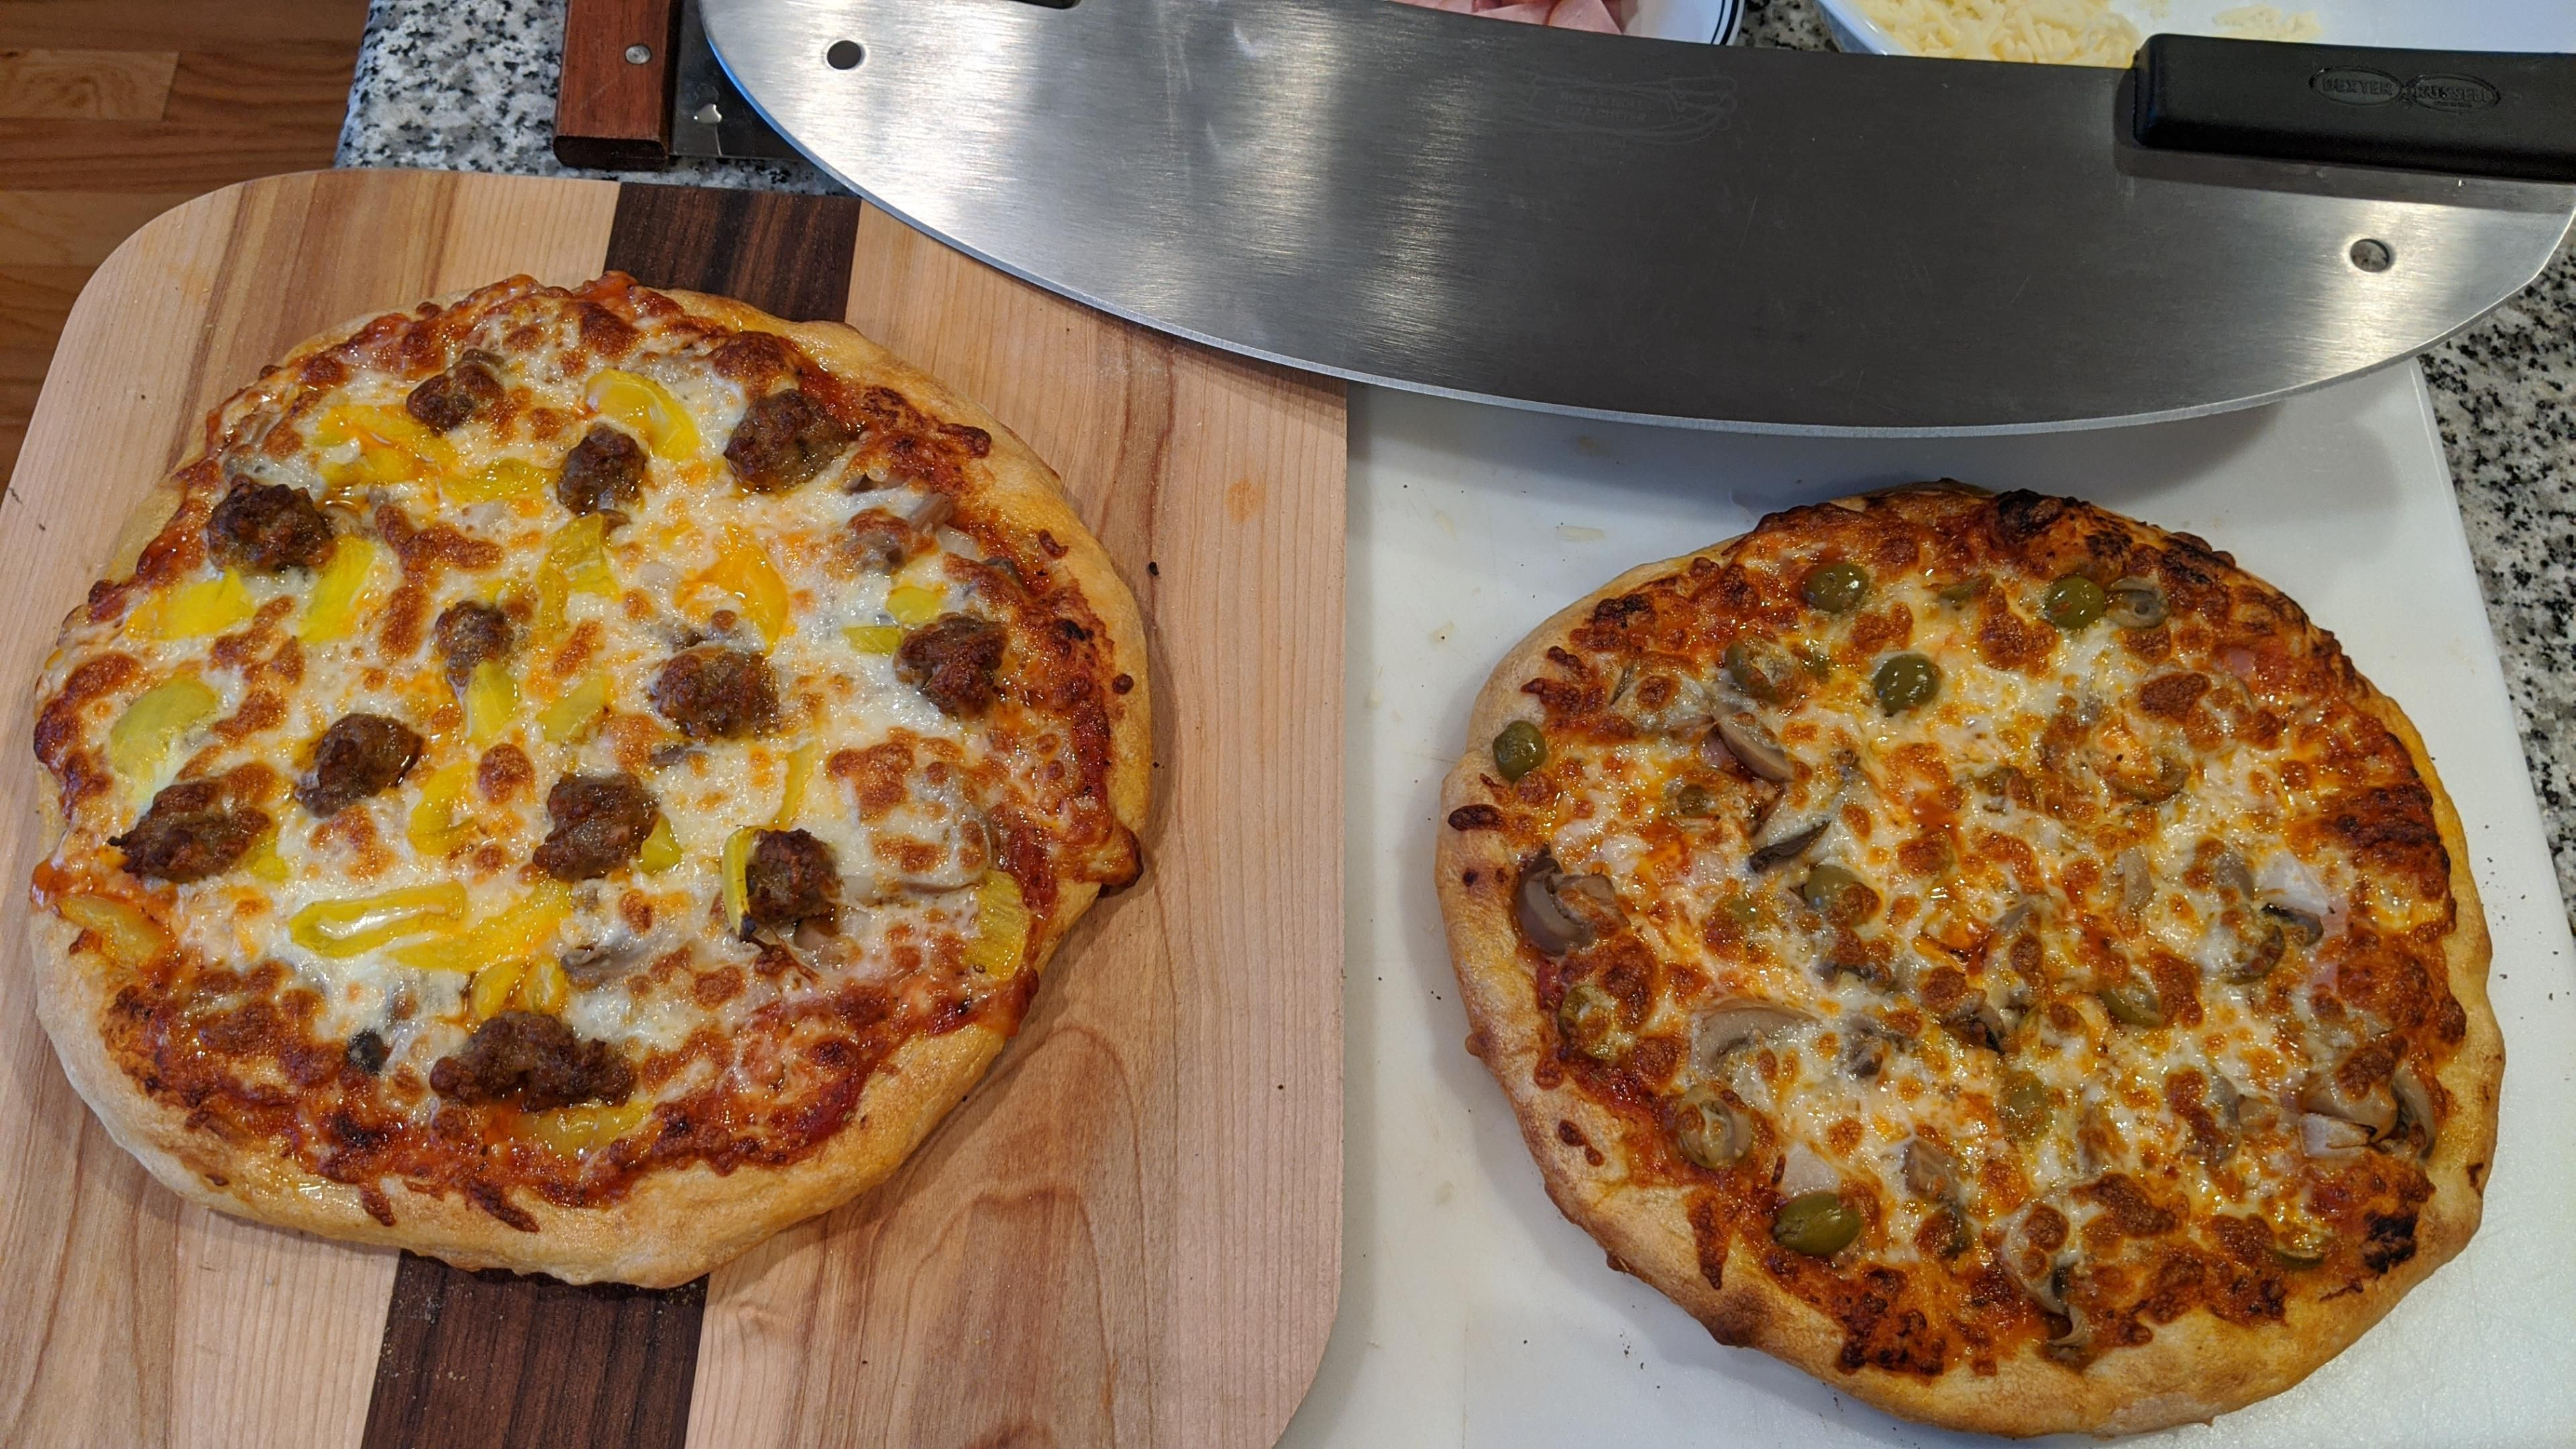 His / Hers Pizza for Survivor #Pizza #Pizzas #food #foods